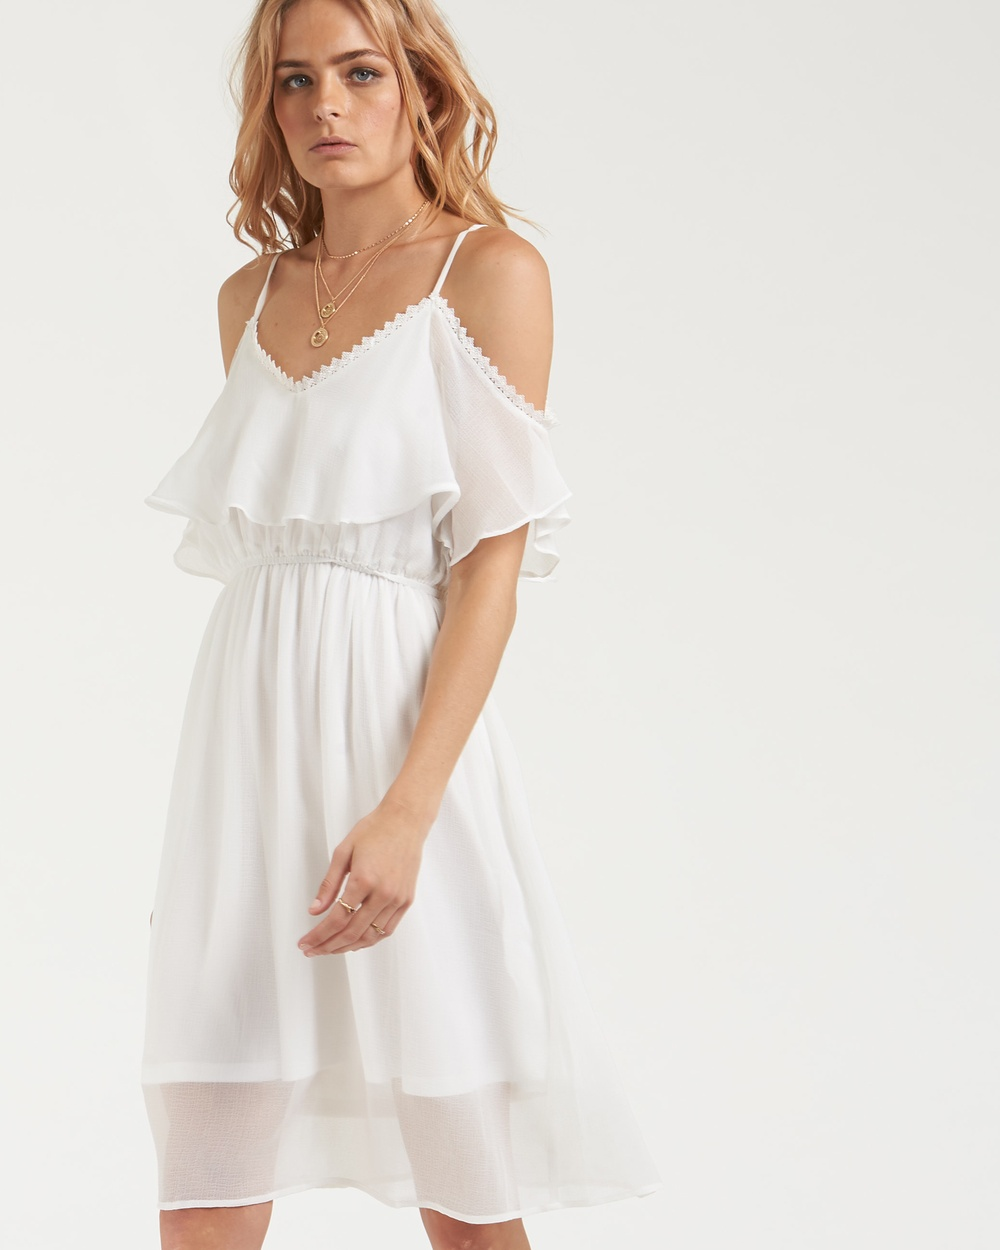 Amelius Milly Dress Bridesmaid Dresses White Milly Dress